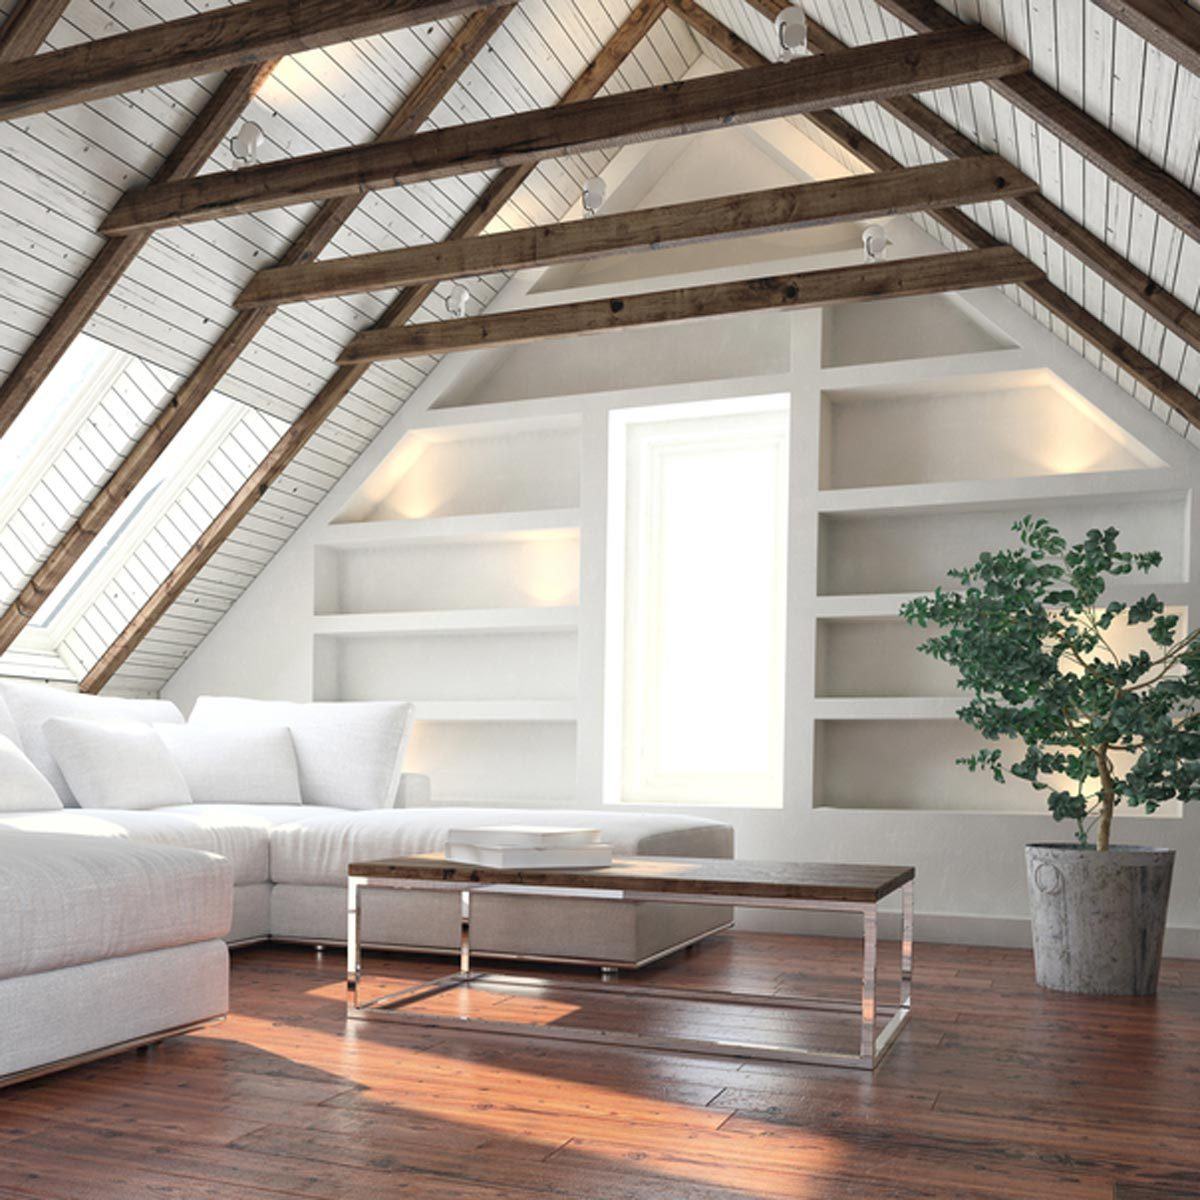 shutterstock_658288114 finish attic diy projects